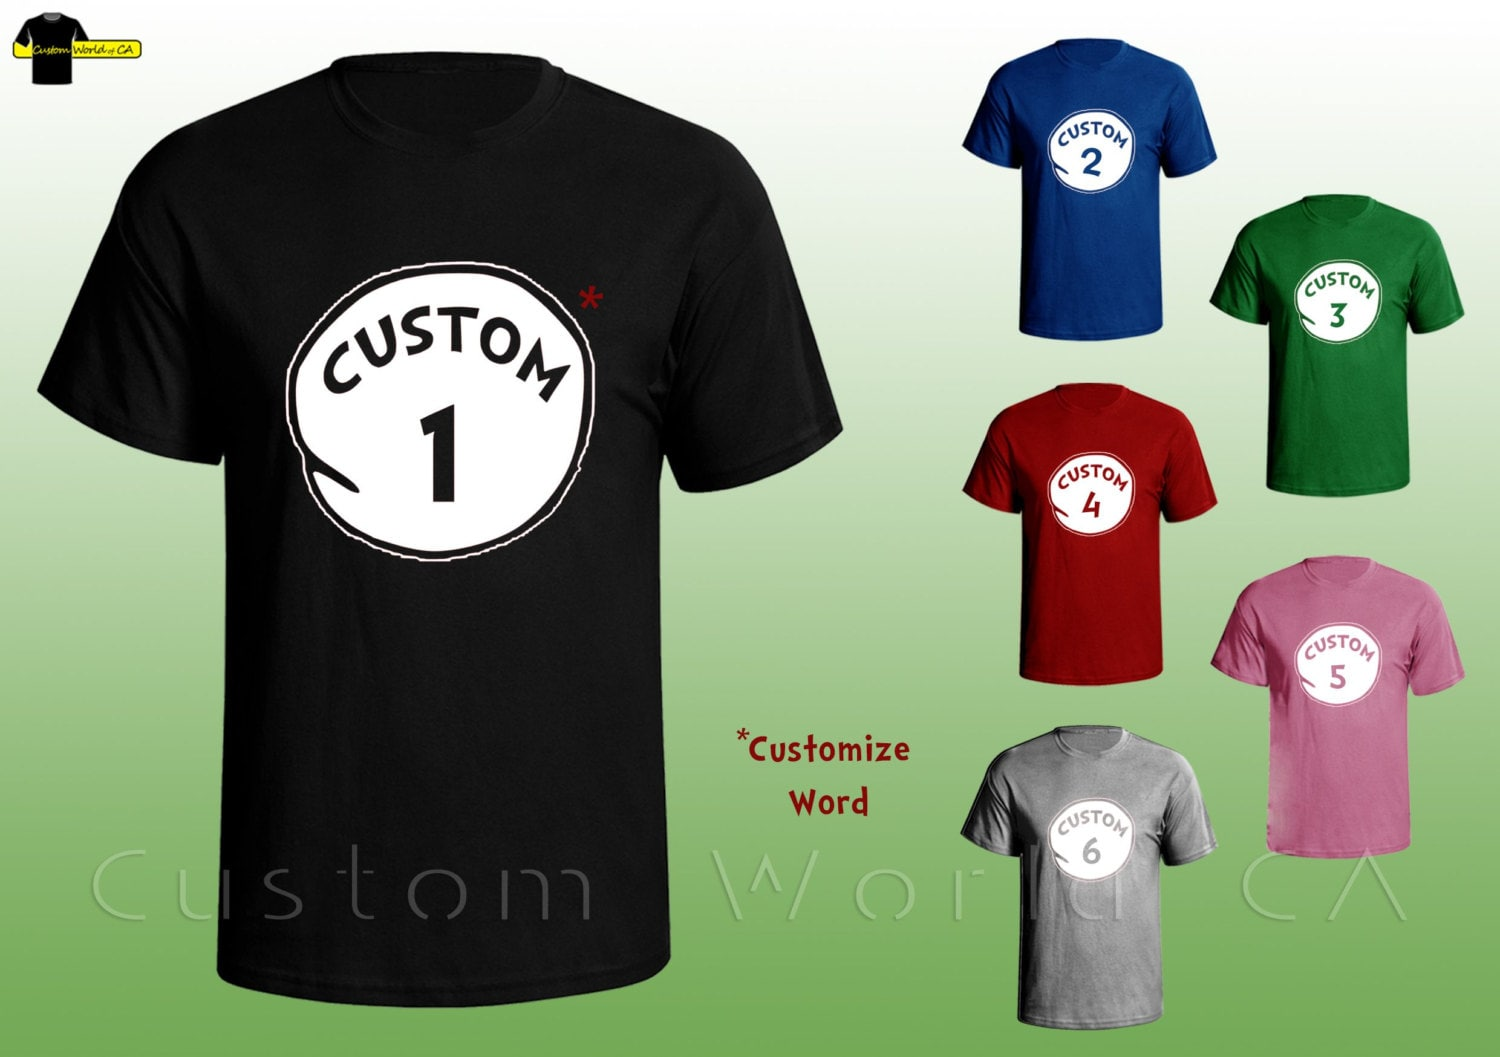 Custom Your Thing Shirts Put Your Own Word Thing By